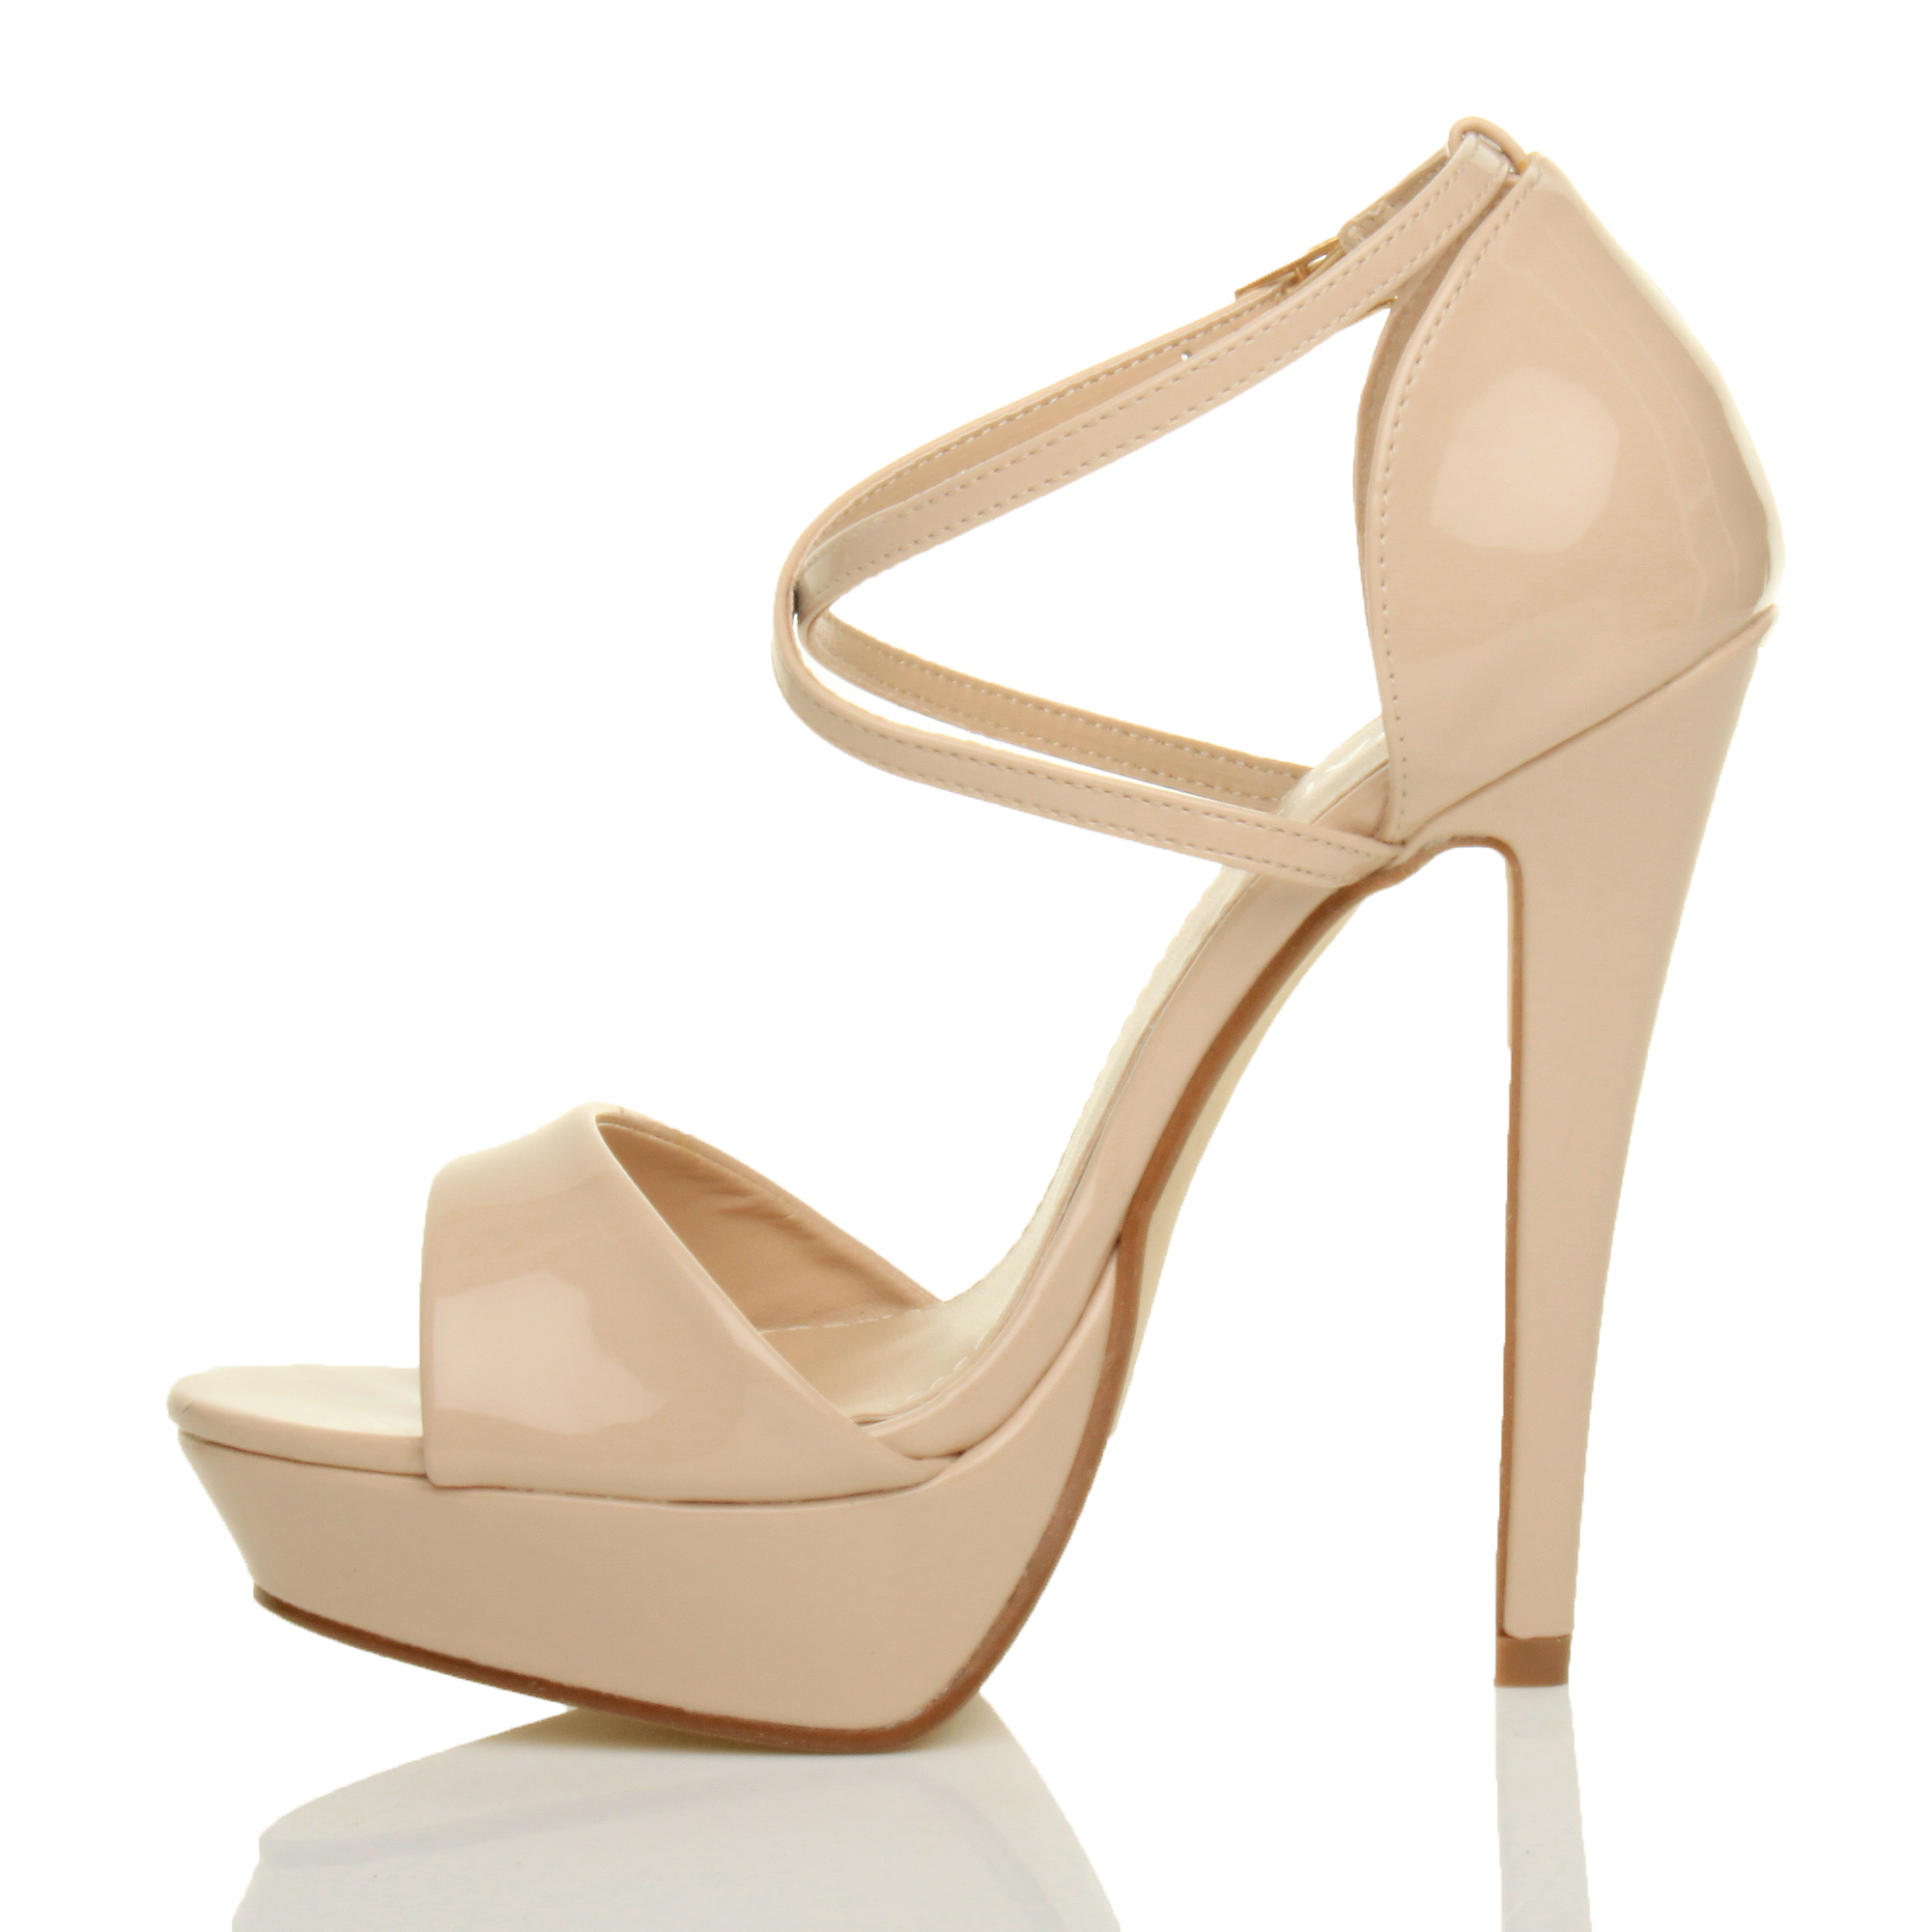 WOMENS-LADIES-PLATFORM-HIGH-HEEL-PEEP-TOE-CROSS-OVER-STRAPPY-SANDALS-SHOES-SIZE thumbnail 66